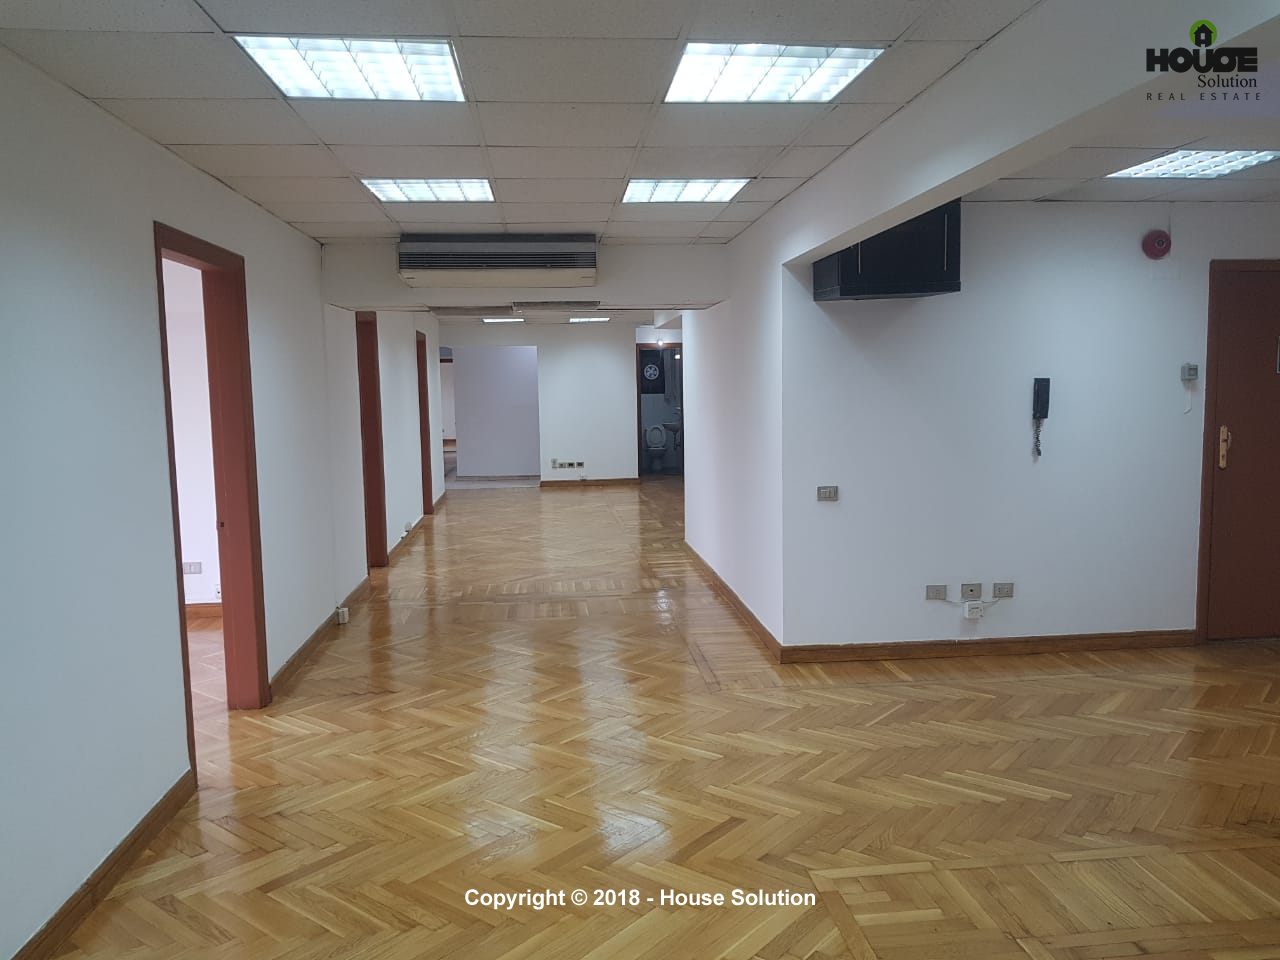 600 Meters Office Space For Rent In Sarayat El Maadi Housesolutionegypt Office Space Furnished Apartments For Rent Simple Apartments